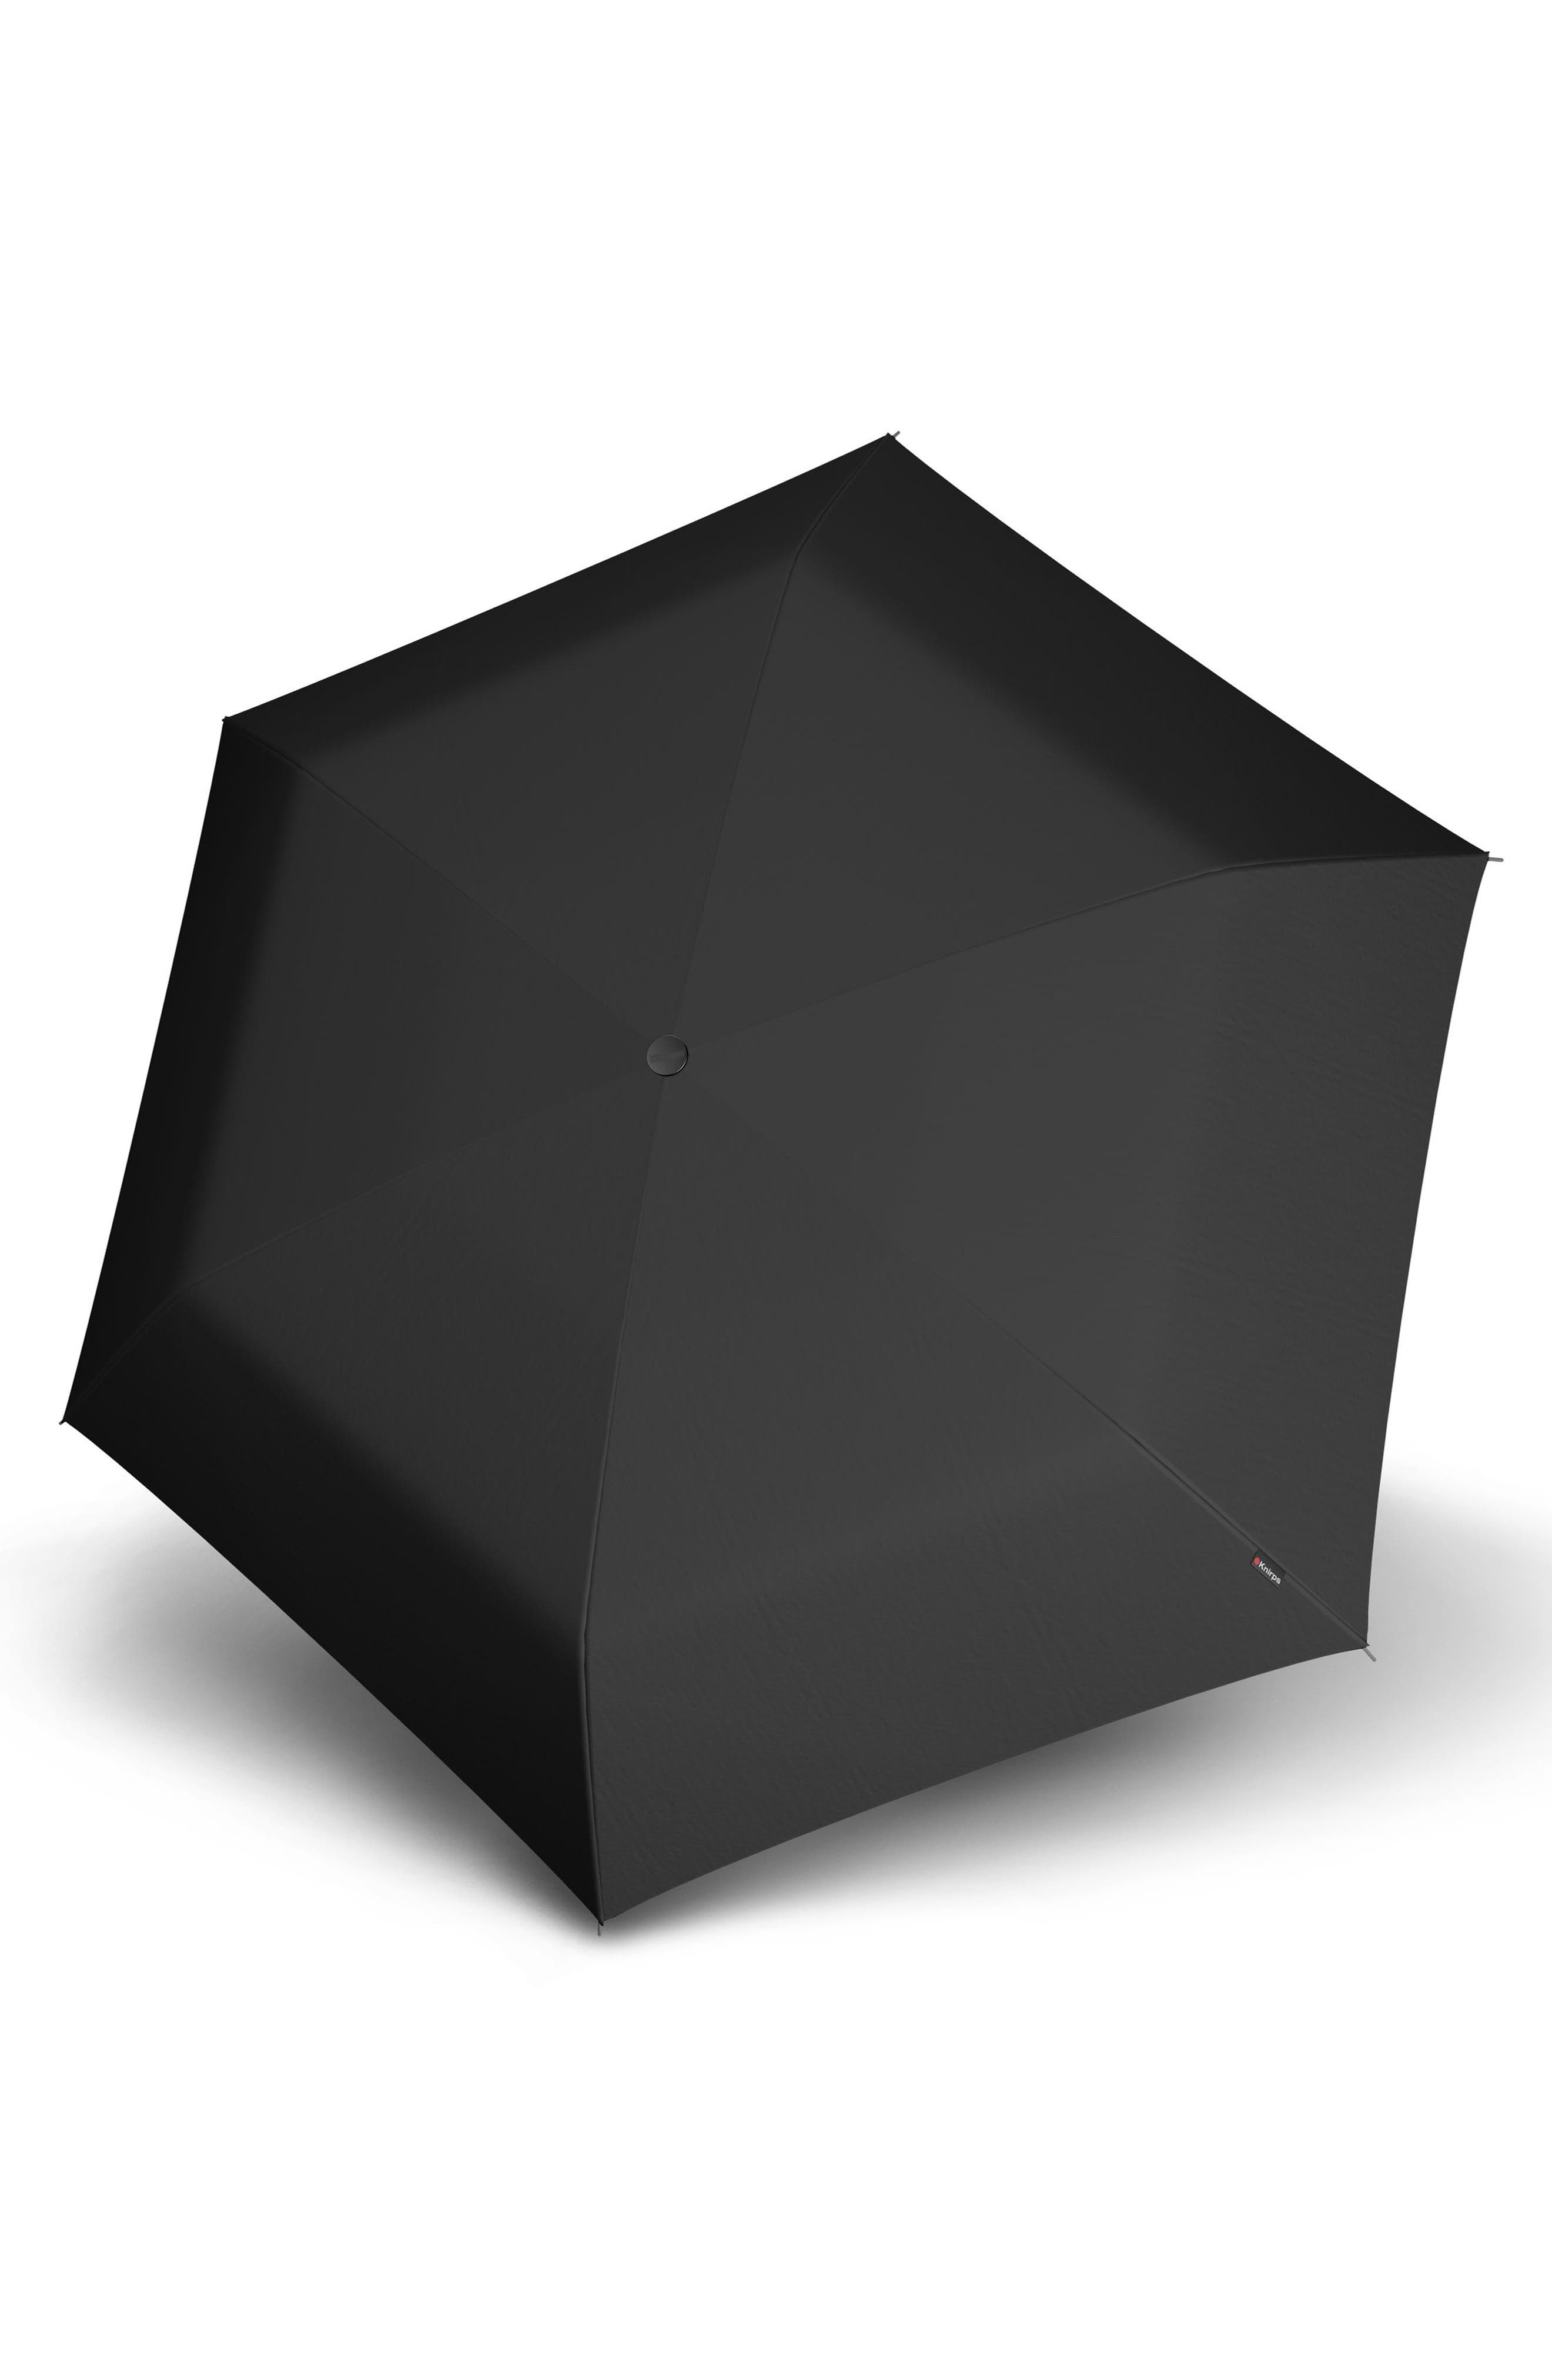 'Flat Duomatic' Umbrella,                             Alternate thumbnail 3, color,                             001